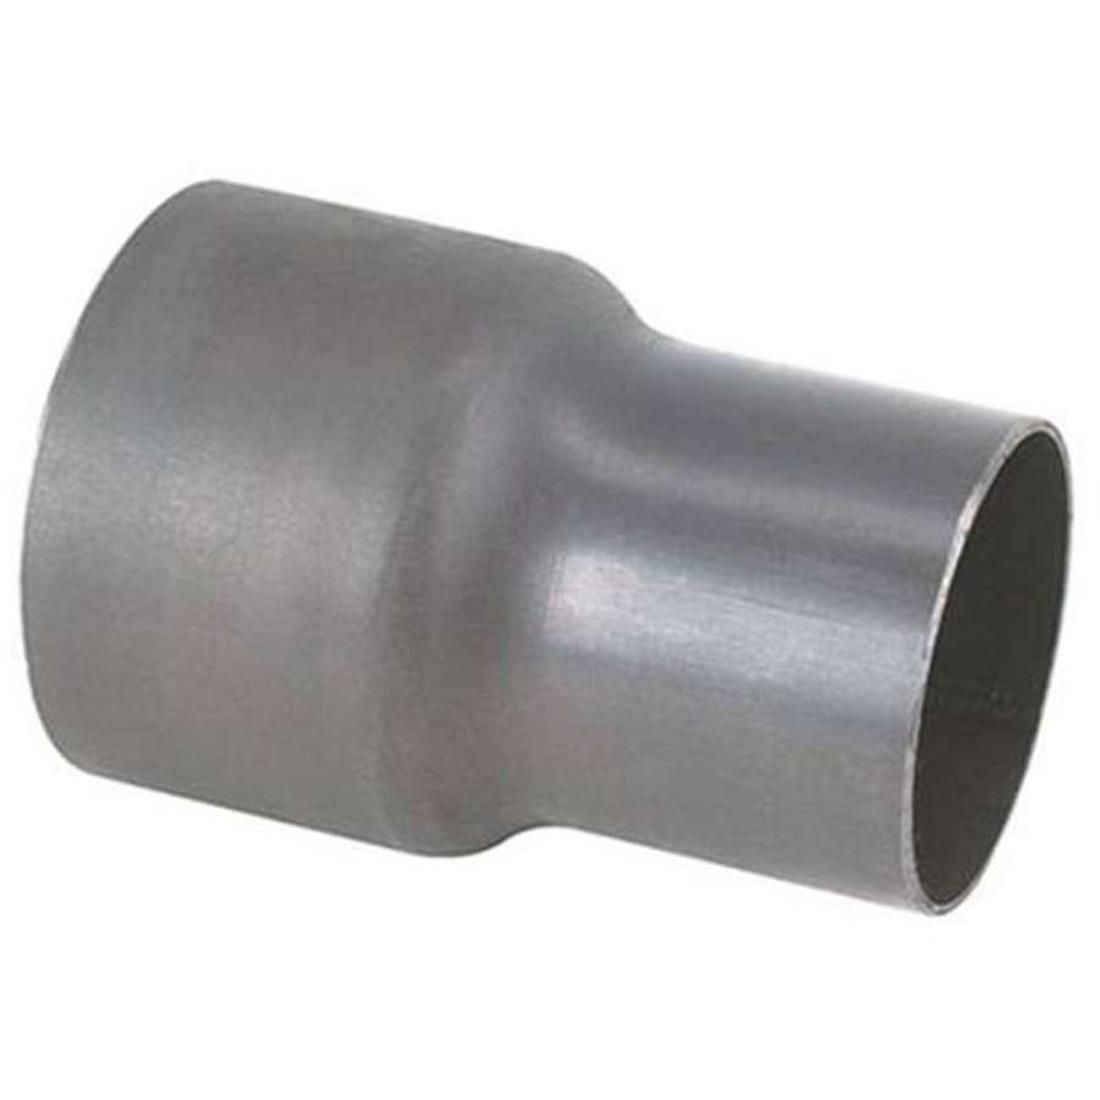 "EXHAUST PIPE REDUCER 2.5"" 63MM - 3"" 76MM MILD STEEL image"